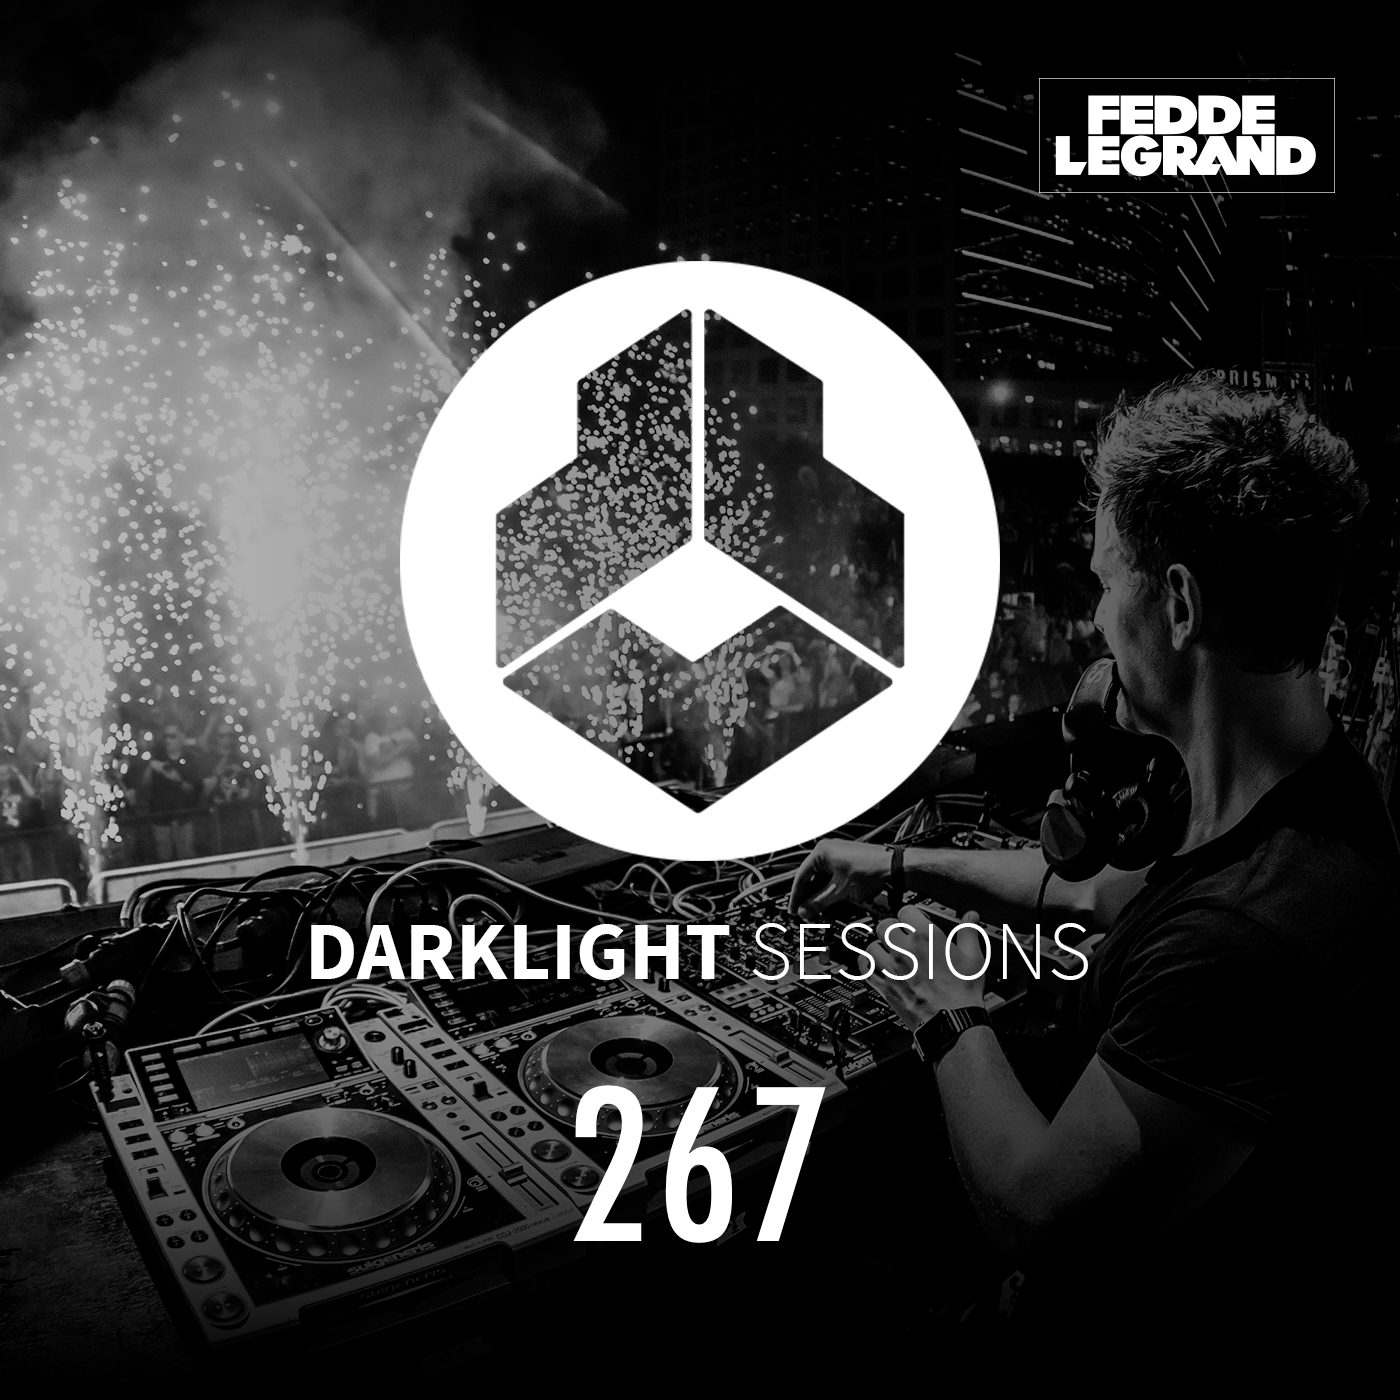 Darklight Sessions 267